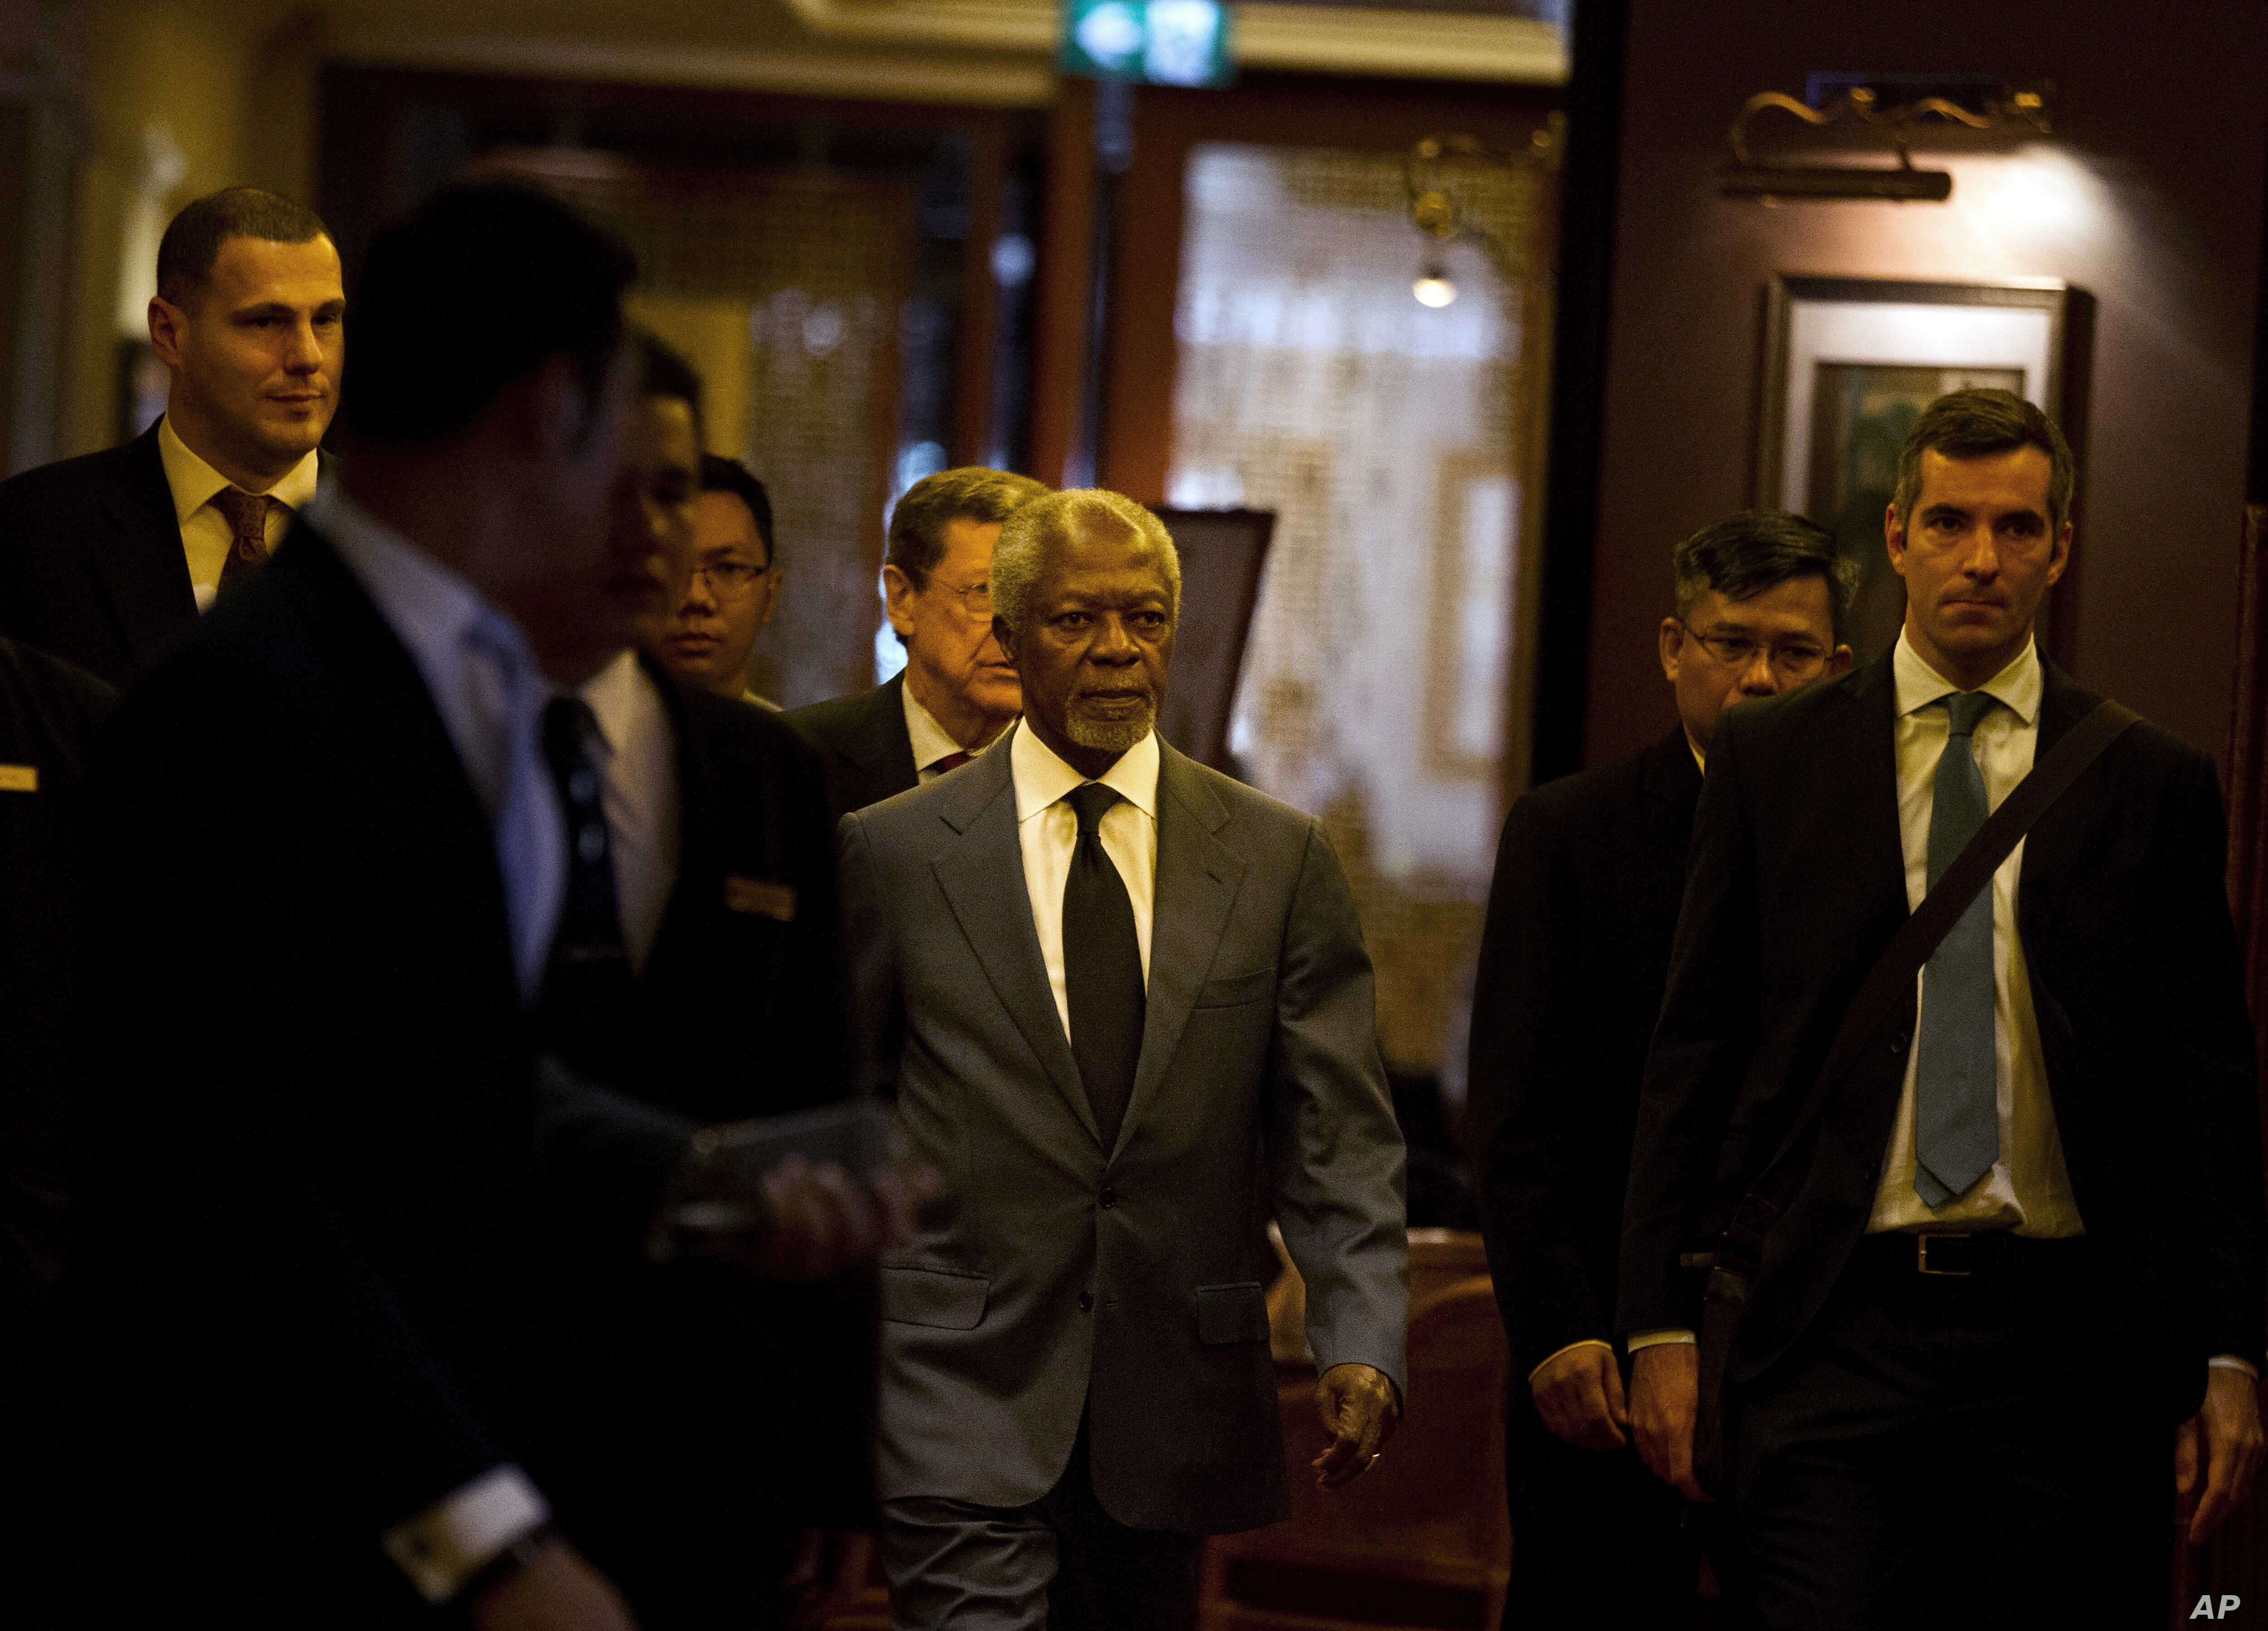 Former U.N. secretary general and chairman of the Advisory Commission on Rakhine state Kofi Annan, center, arrives for a press briefing on the final report on Rakhine state, Aug. 24, 2017, in Yangon, Myanmar.